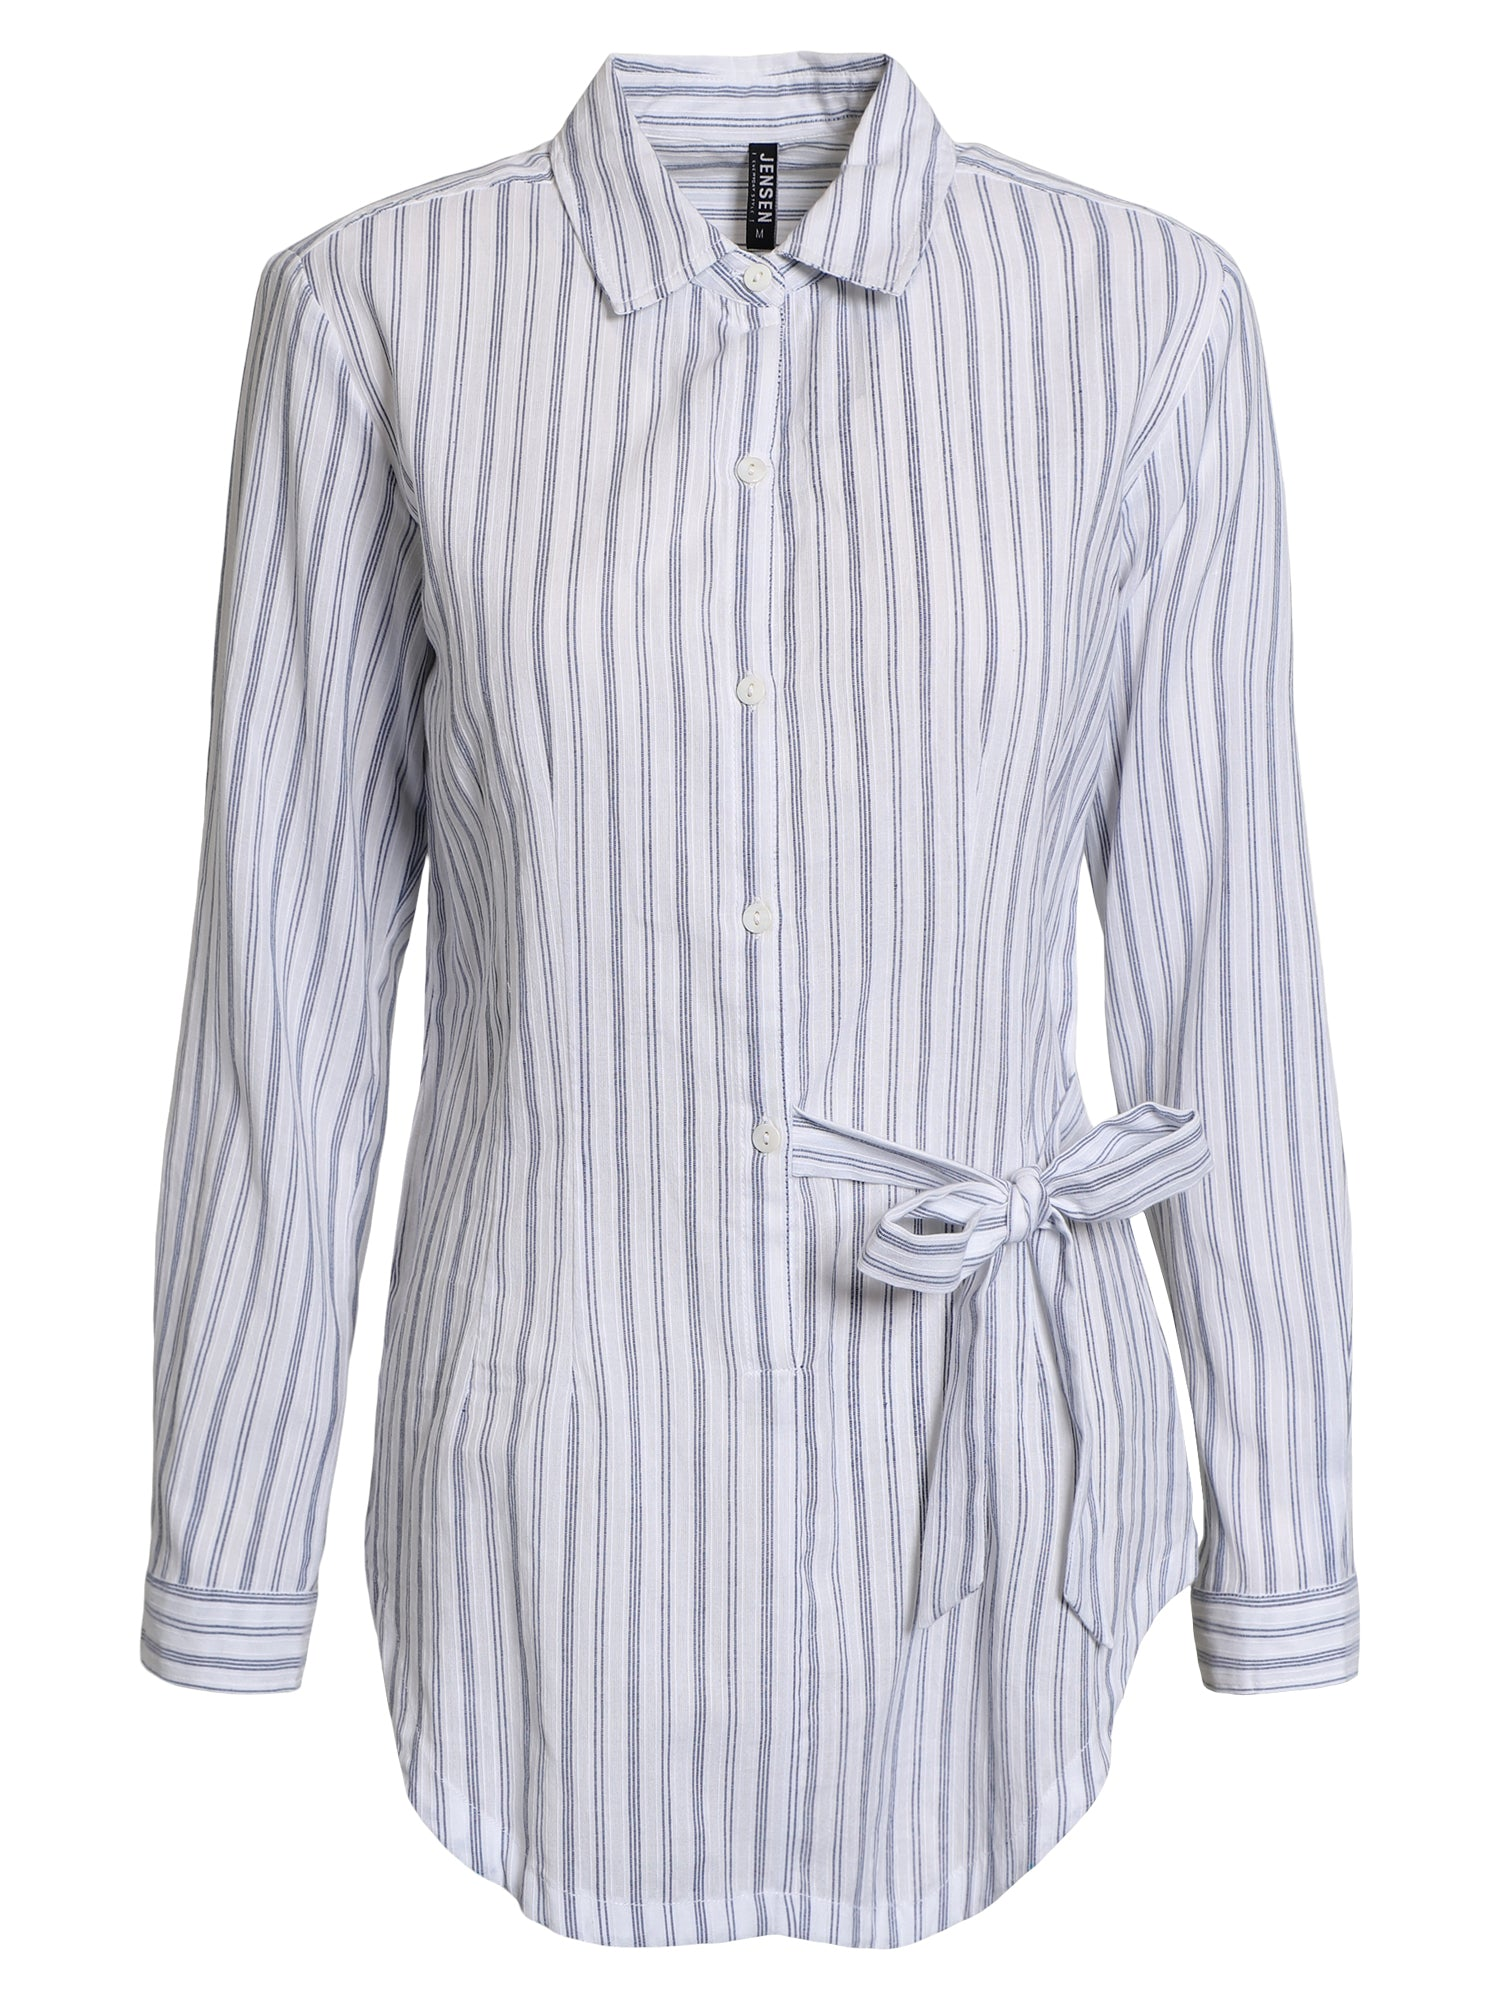 Image of   Bluse, langærmet - Offwhite mix stripe